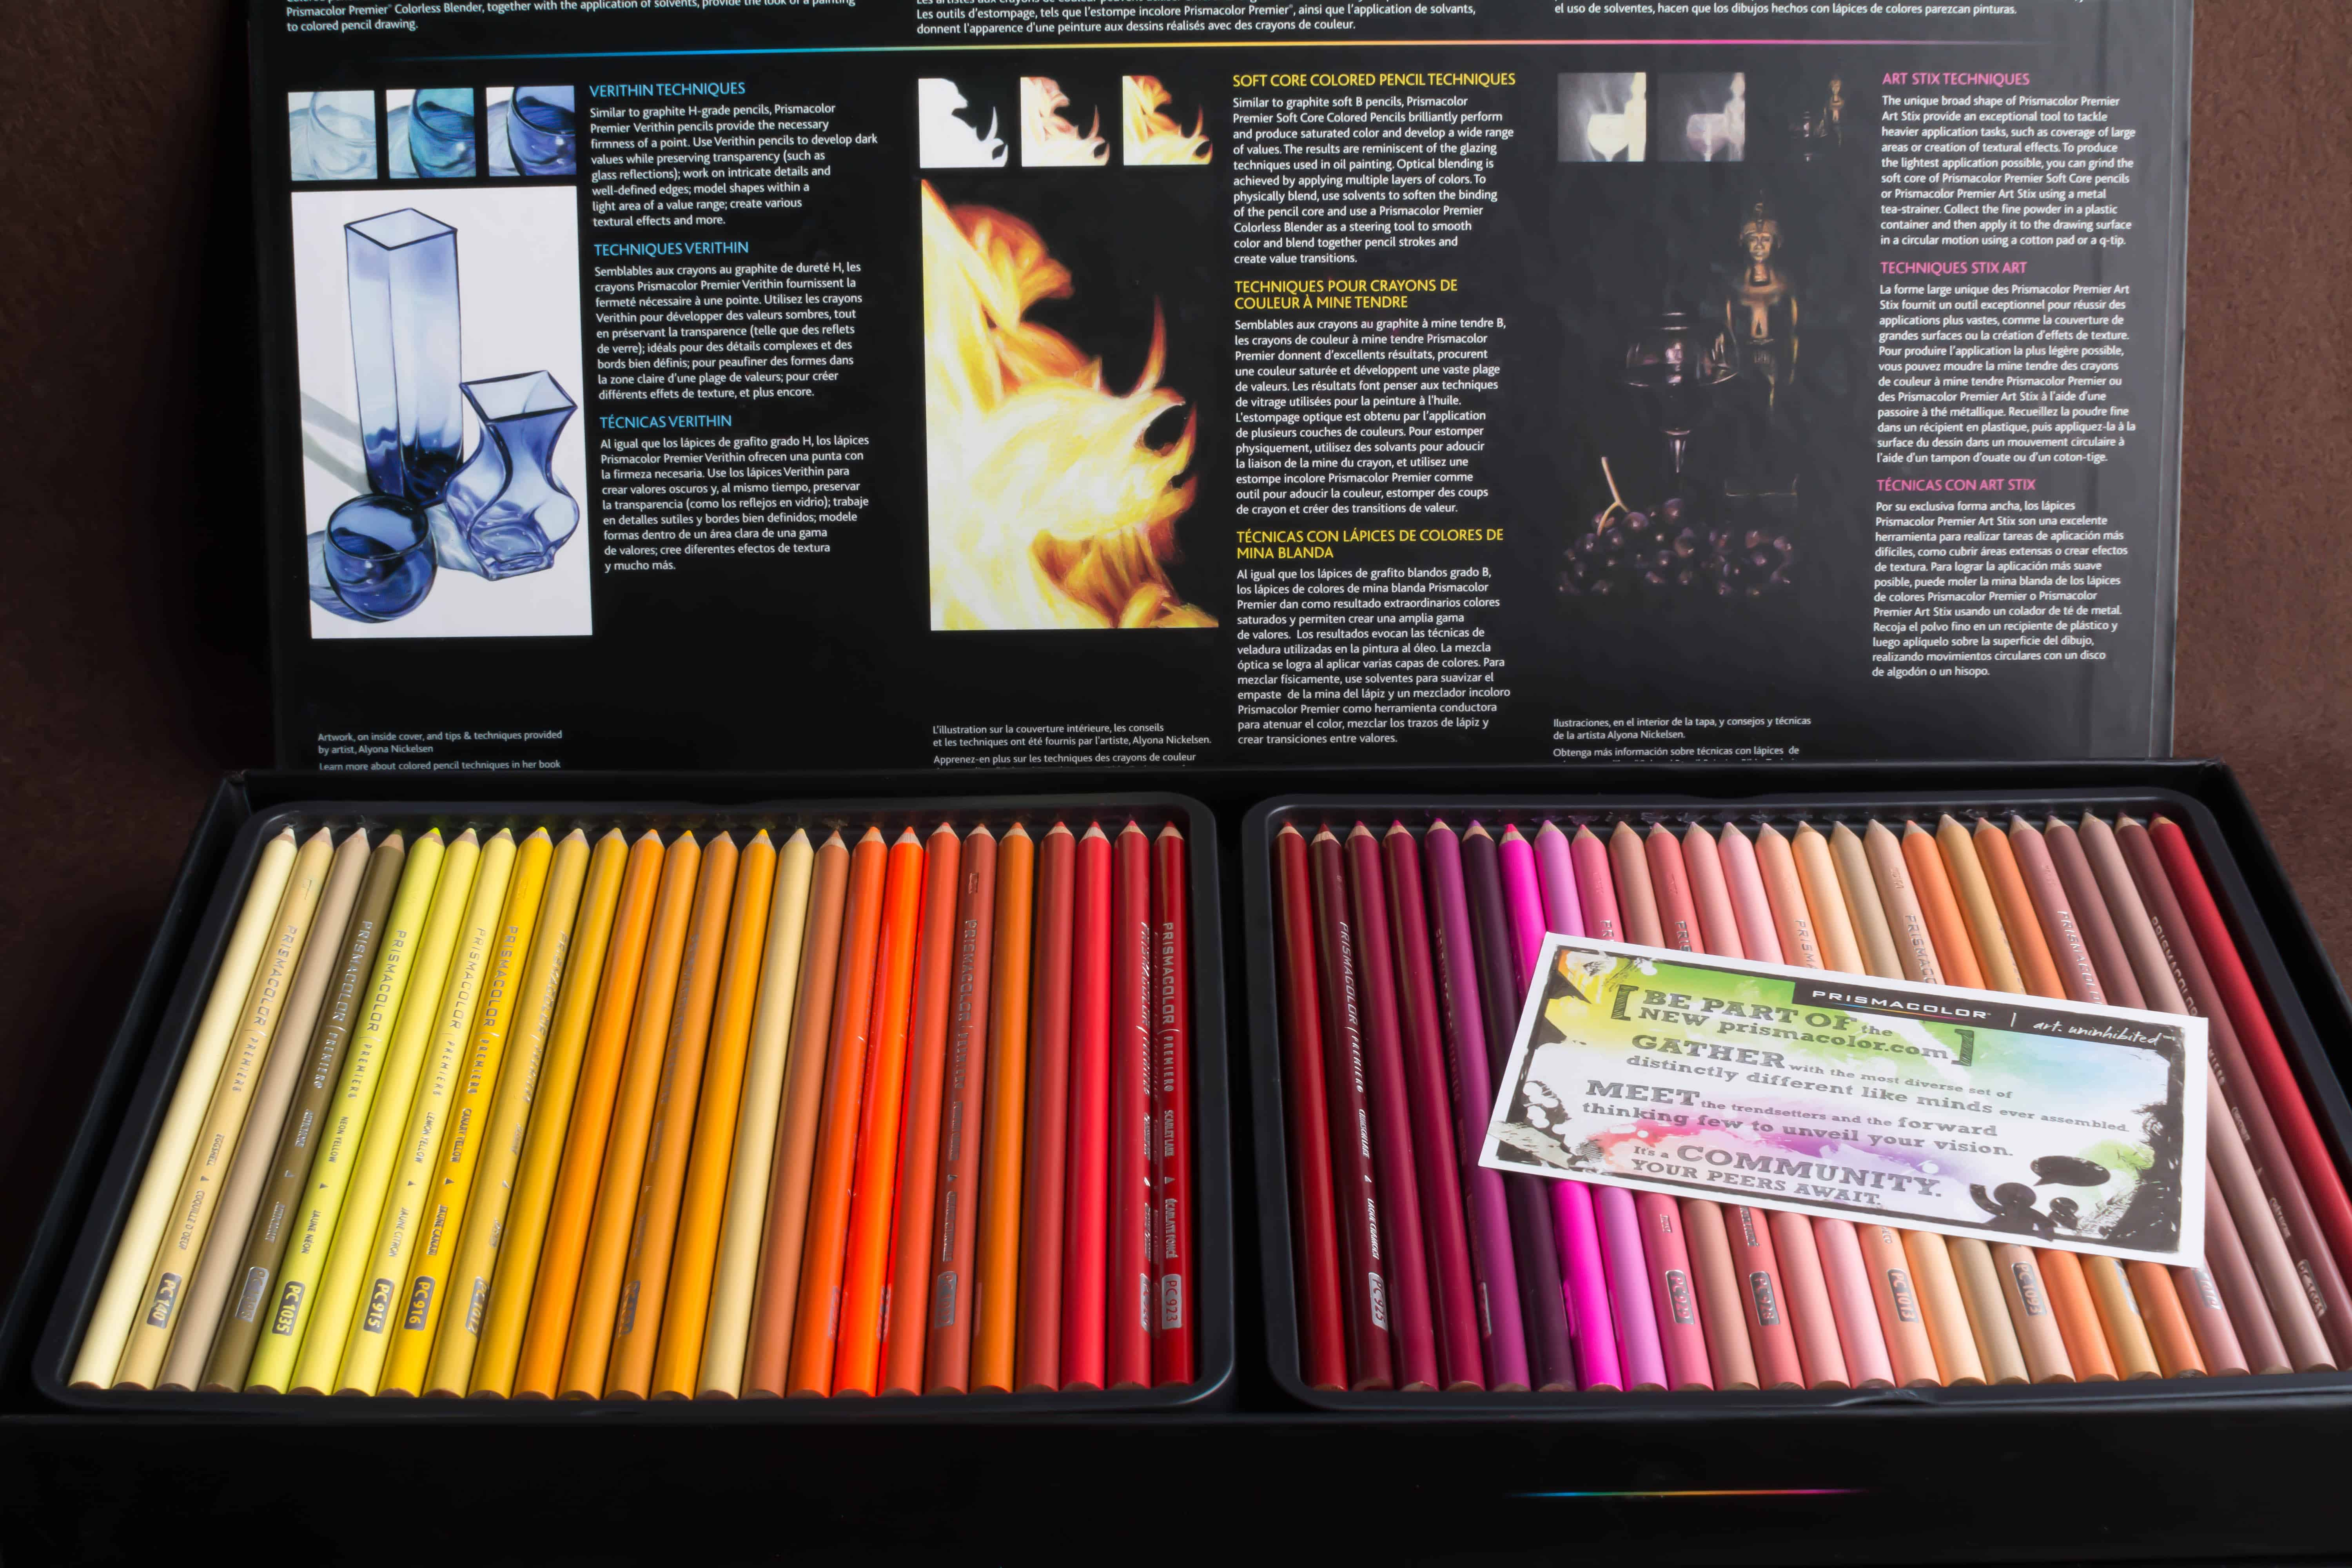 Photo of inner pencil trays of a Prismacolor Premier Colored Pencils 150 piece set.